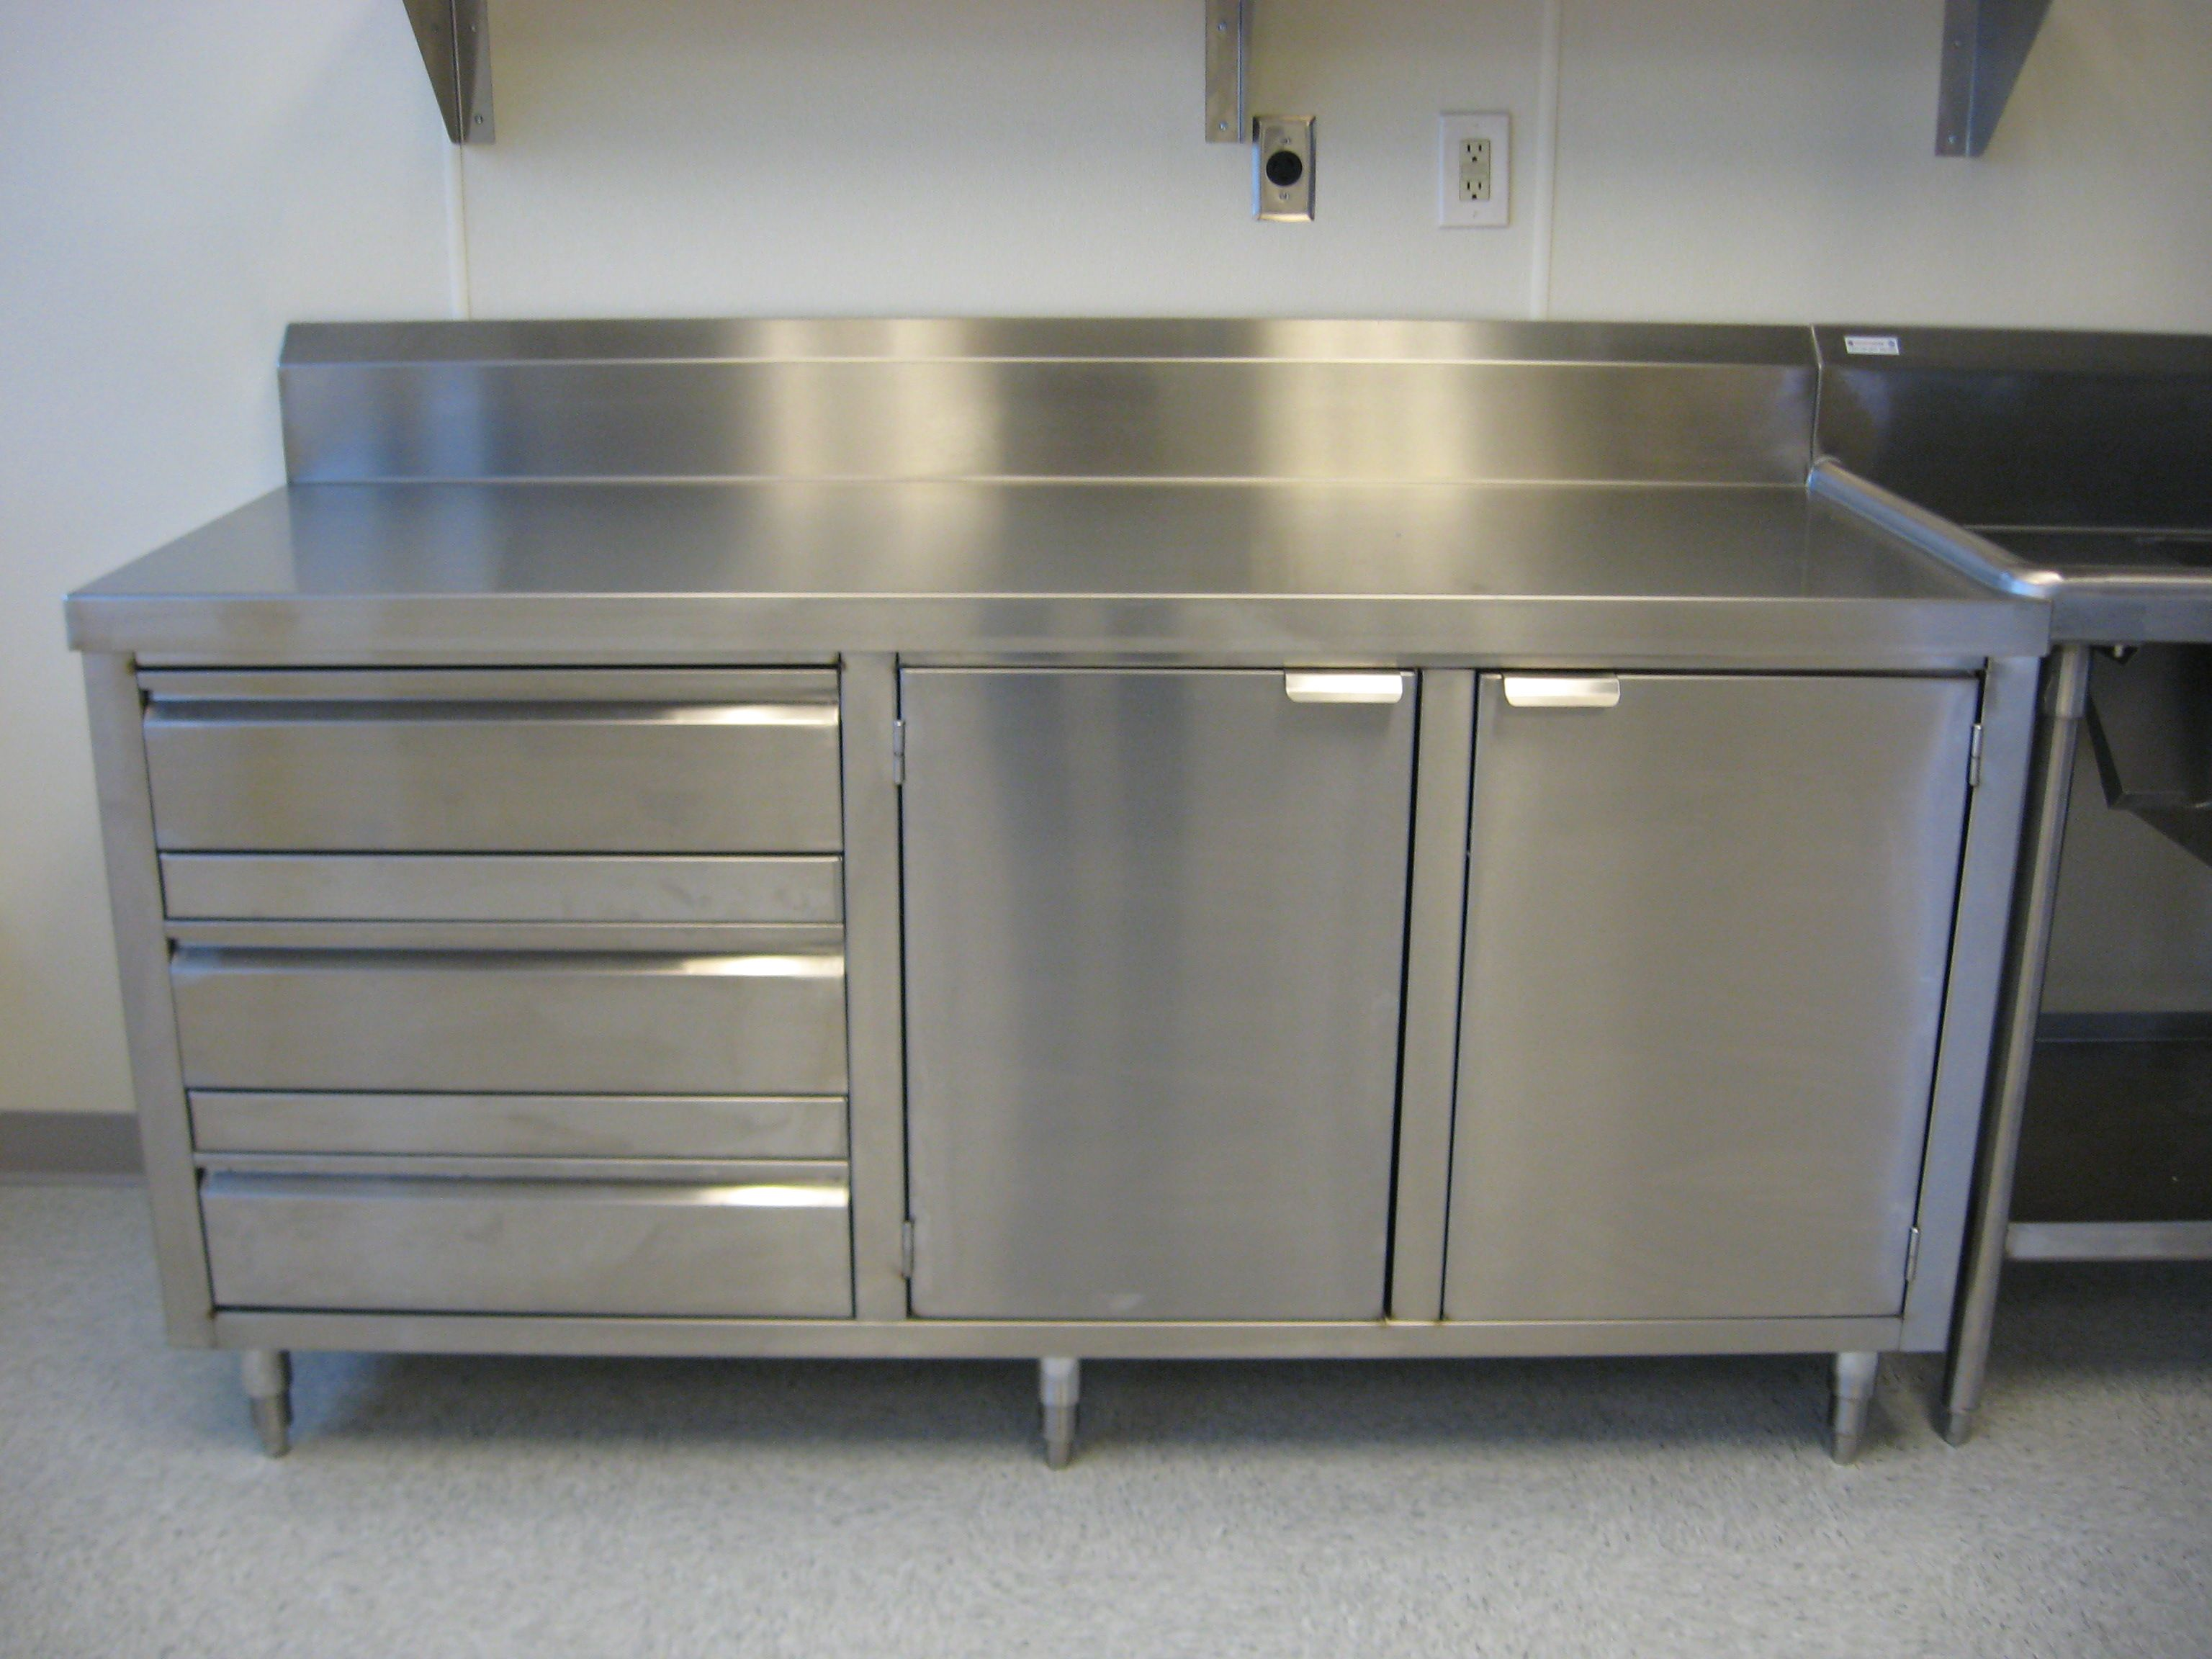 Custom Dish Cabinet Metal Kitchen Cabinets Stainless Steel Kitchen Cabinets Steel Kitchen Cabinets